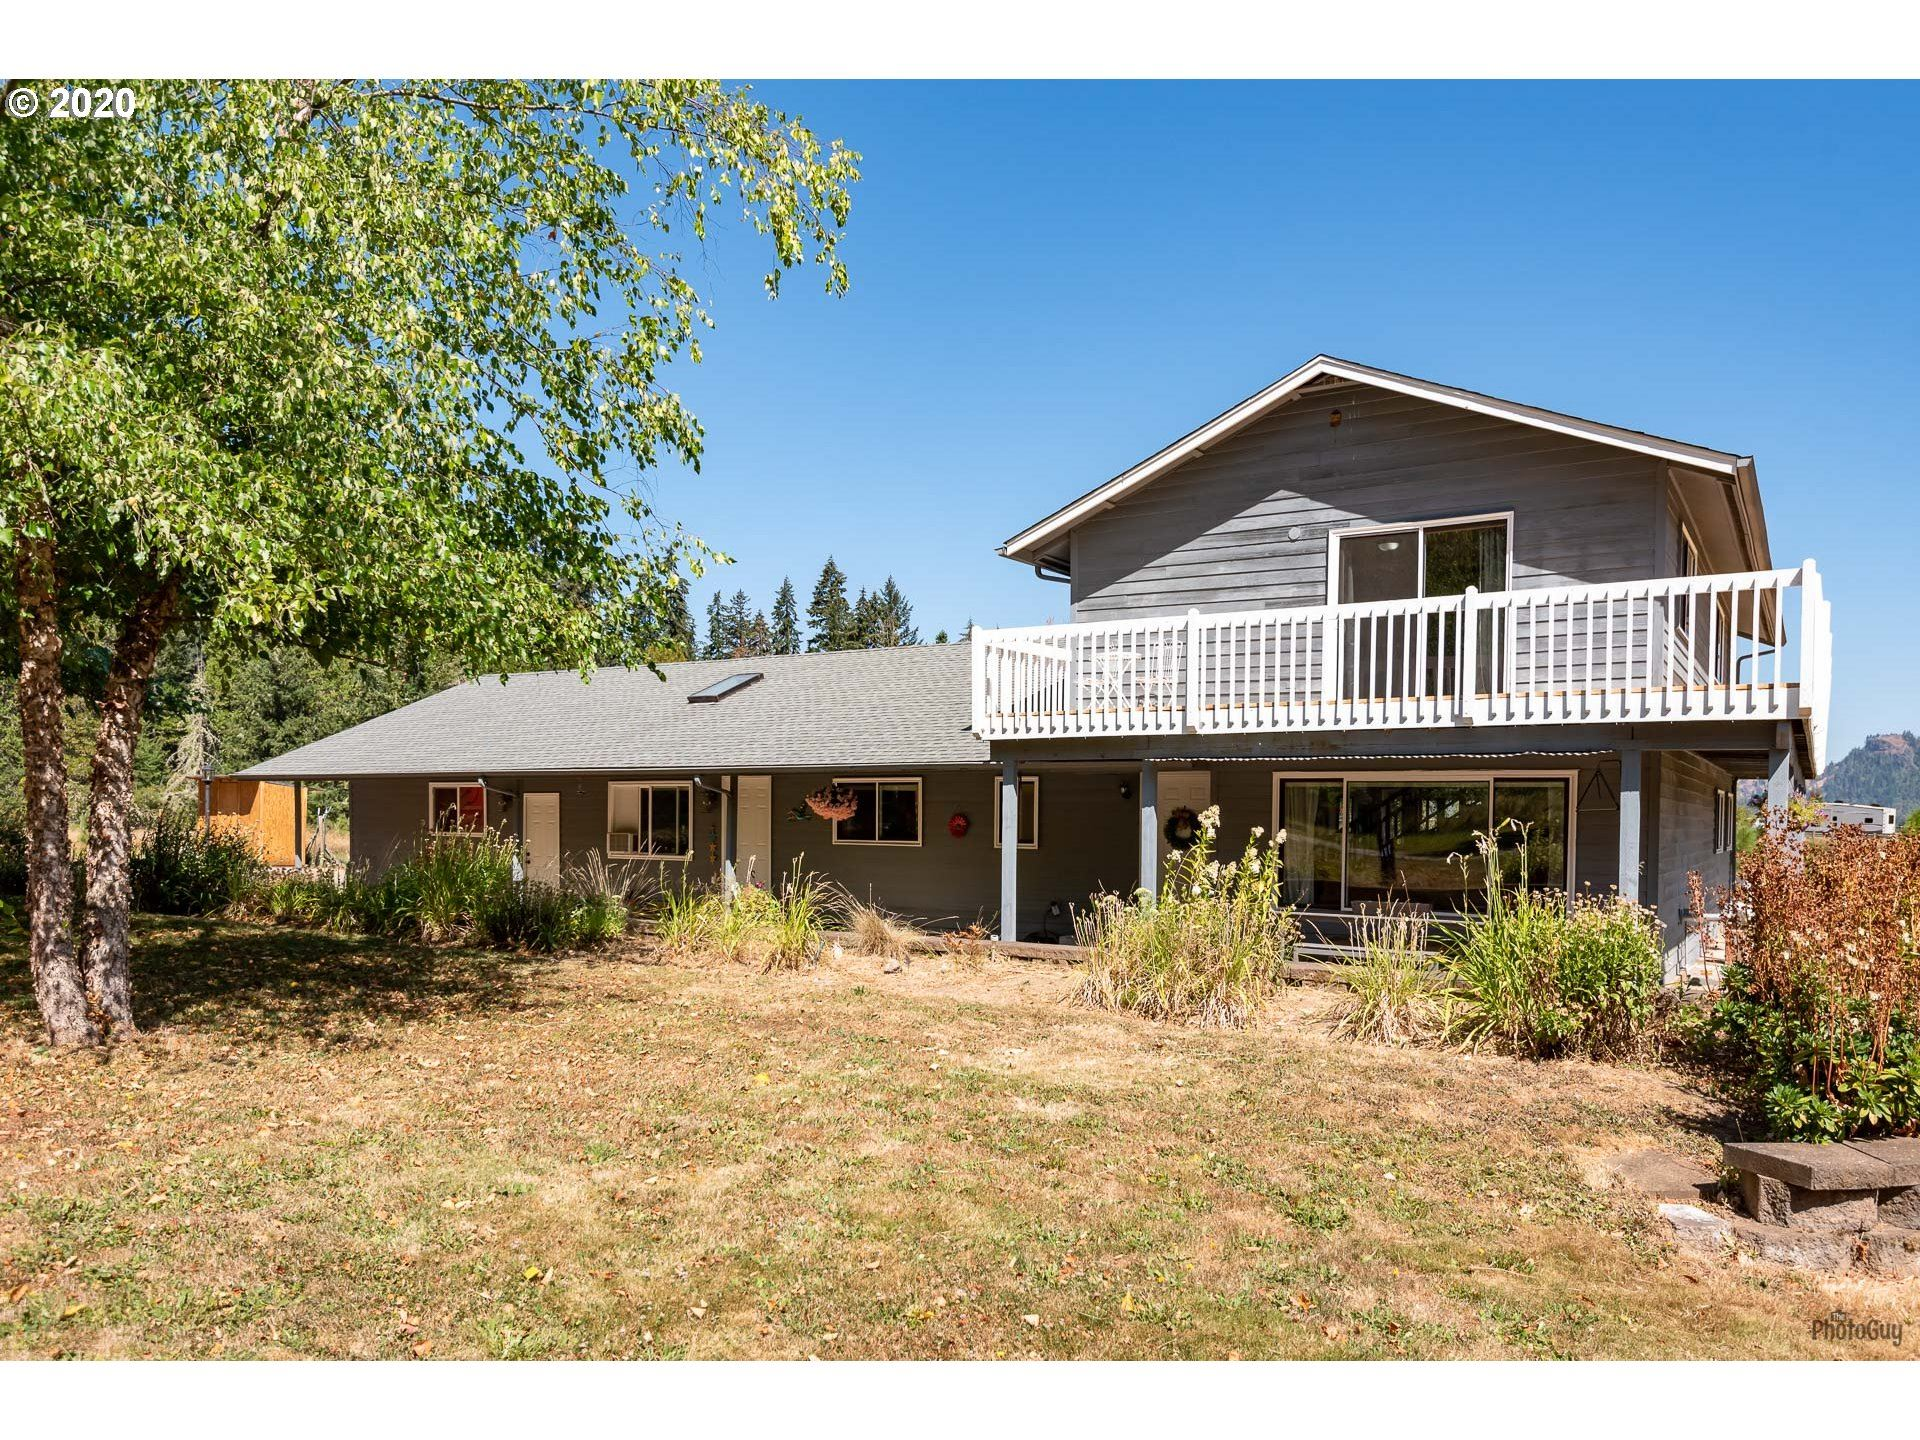 Photo for 37518 HWY 58, Pleasant Hill, OR 97455 (MLS # 20458617)